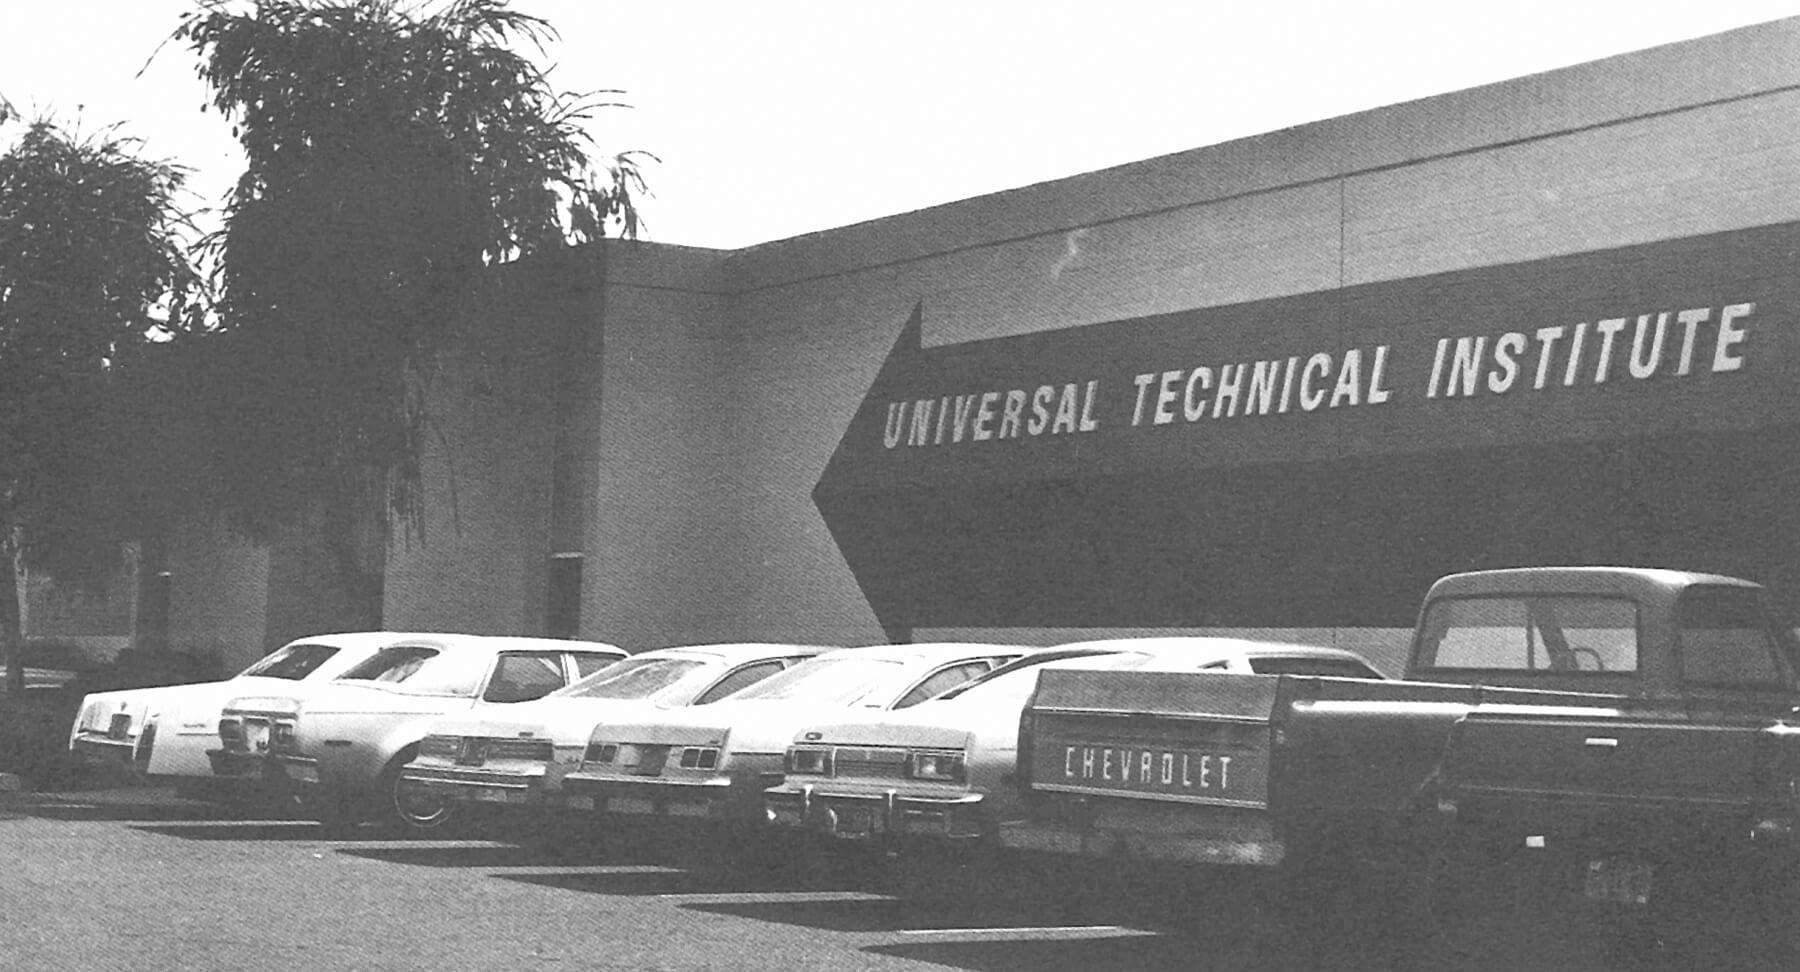 Old black and white exterior photo of the UTI Campus in Avondale Arizona